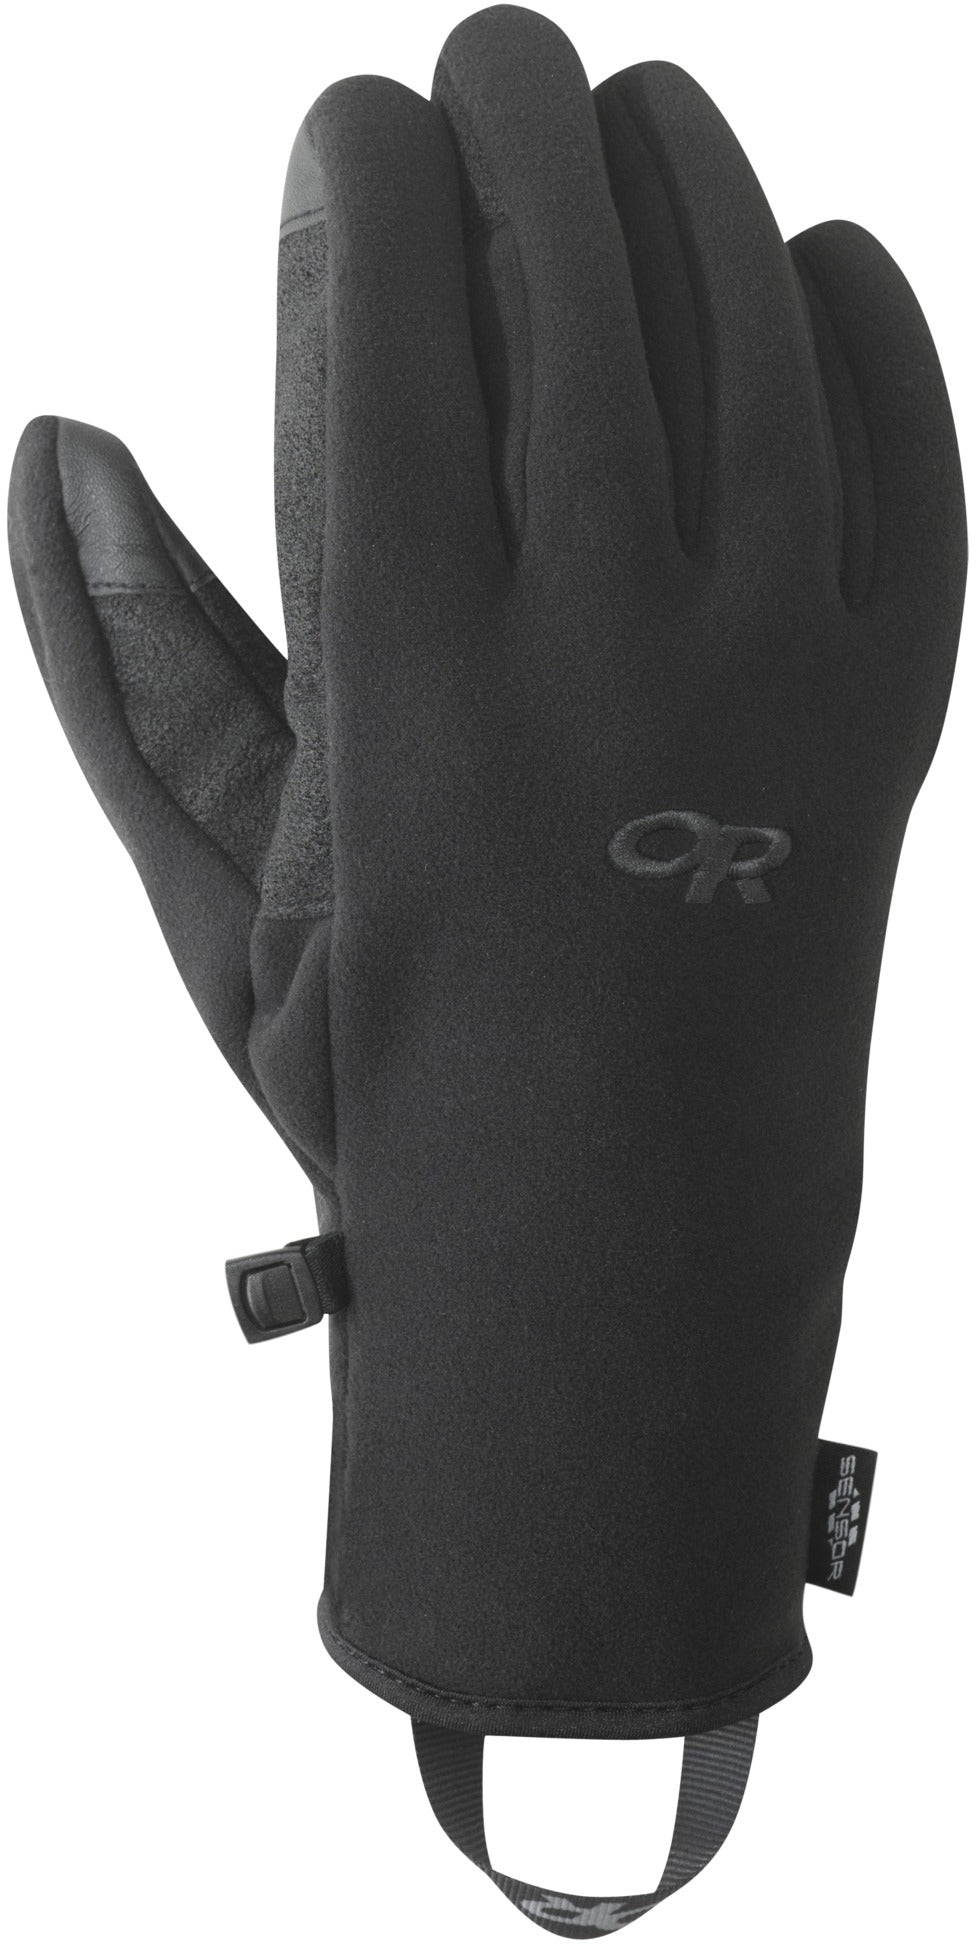 Outdoor Research - Gripper Sensor - Black